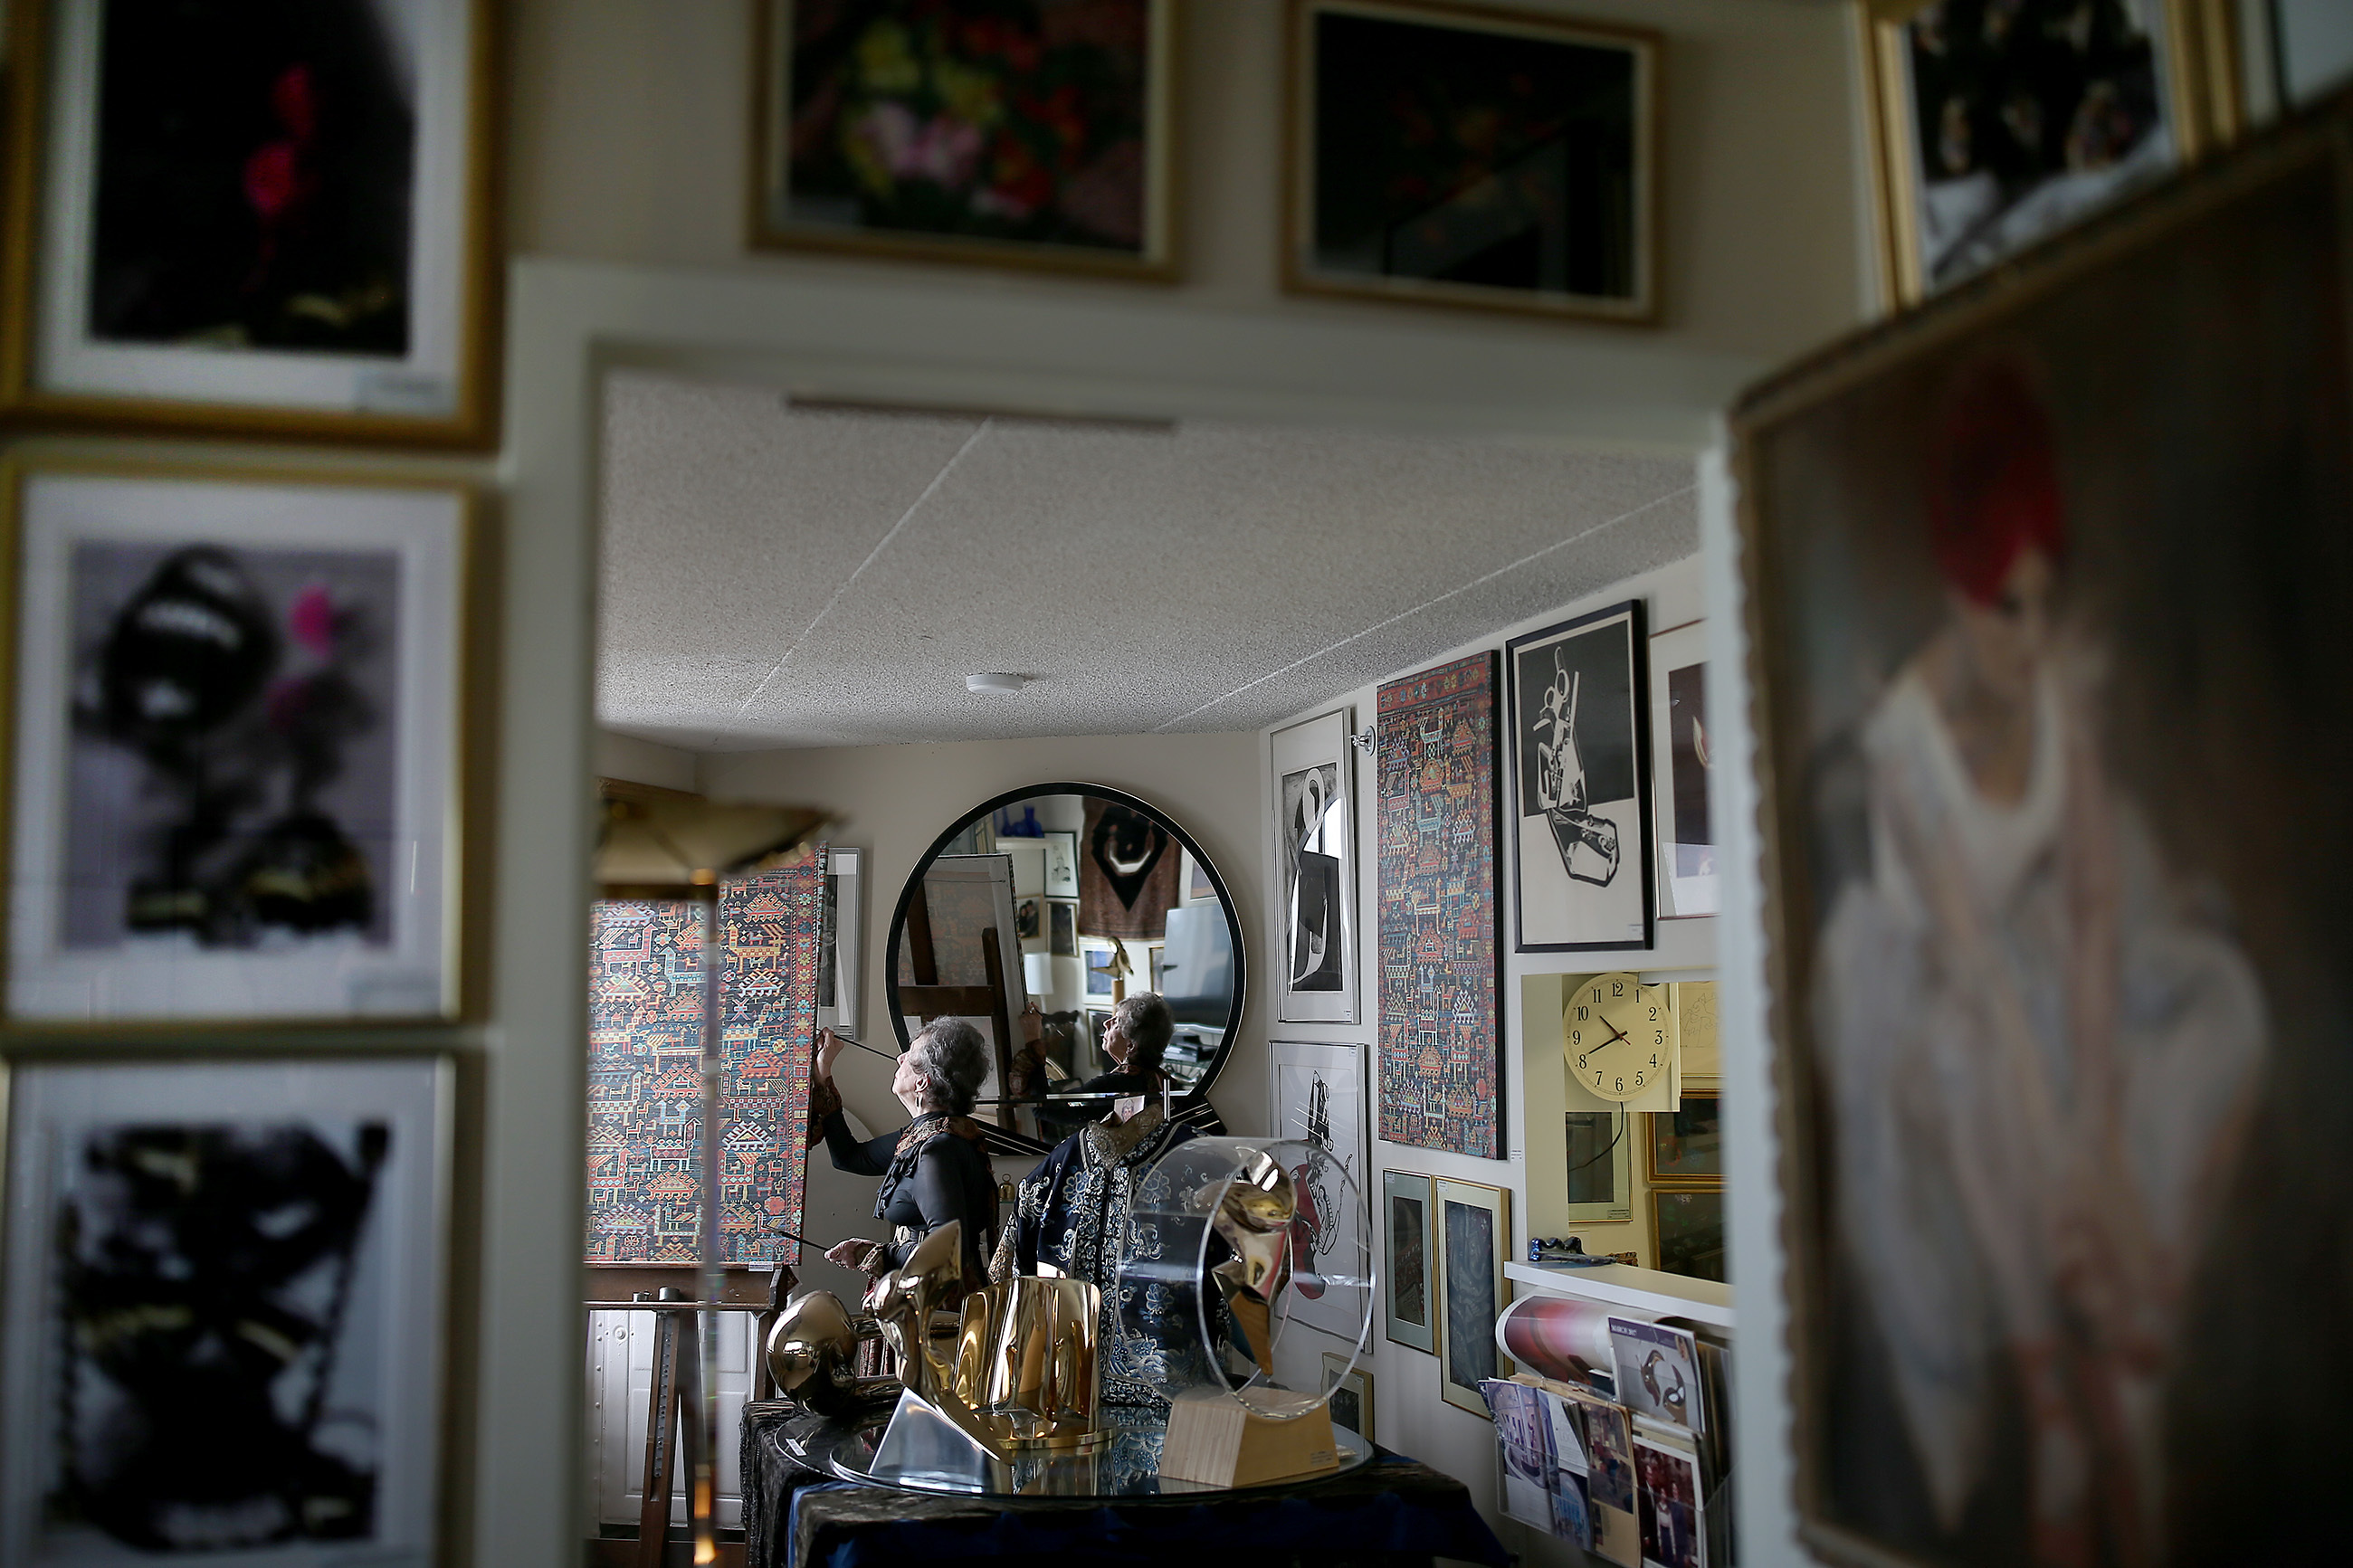 Myrna Bloom works inside her art gallery/apartment.